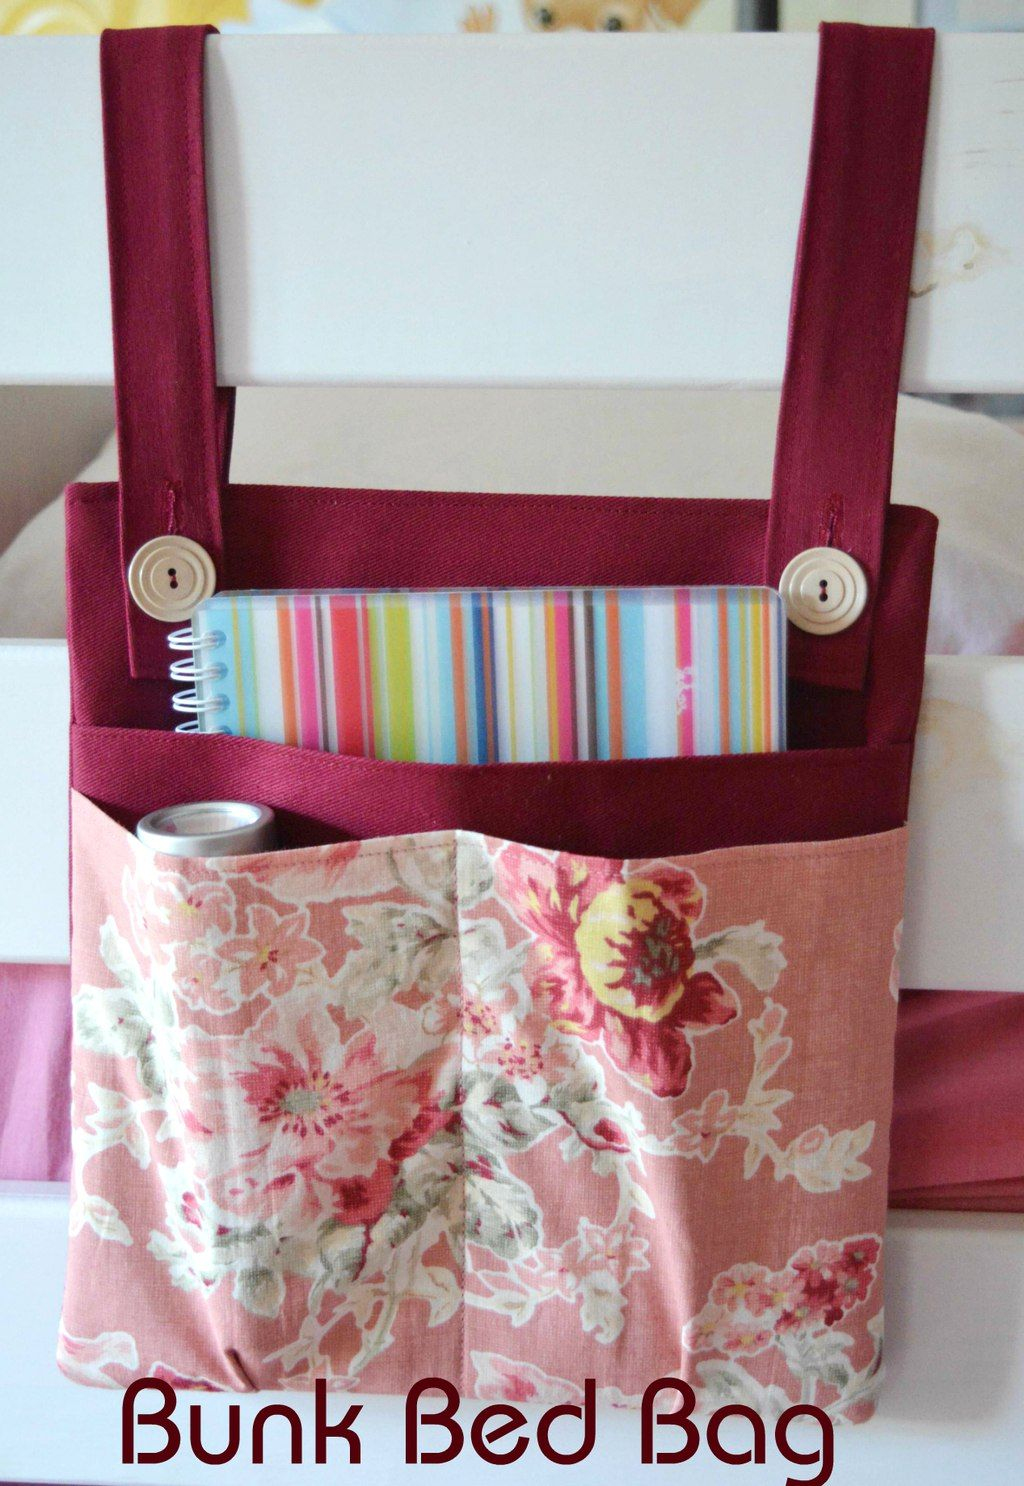 diy bunk bed storage bag/organizer | bed storage, bunk bed and